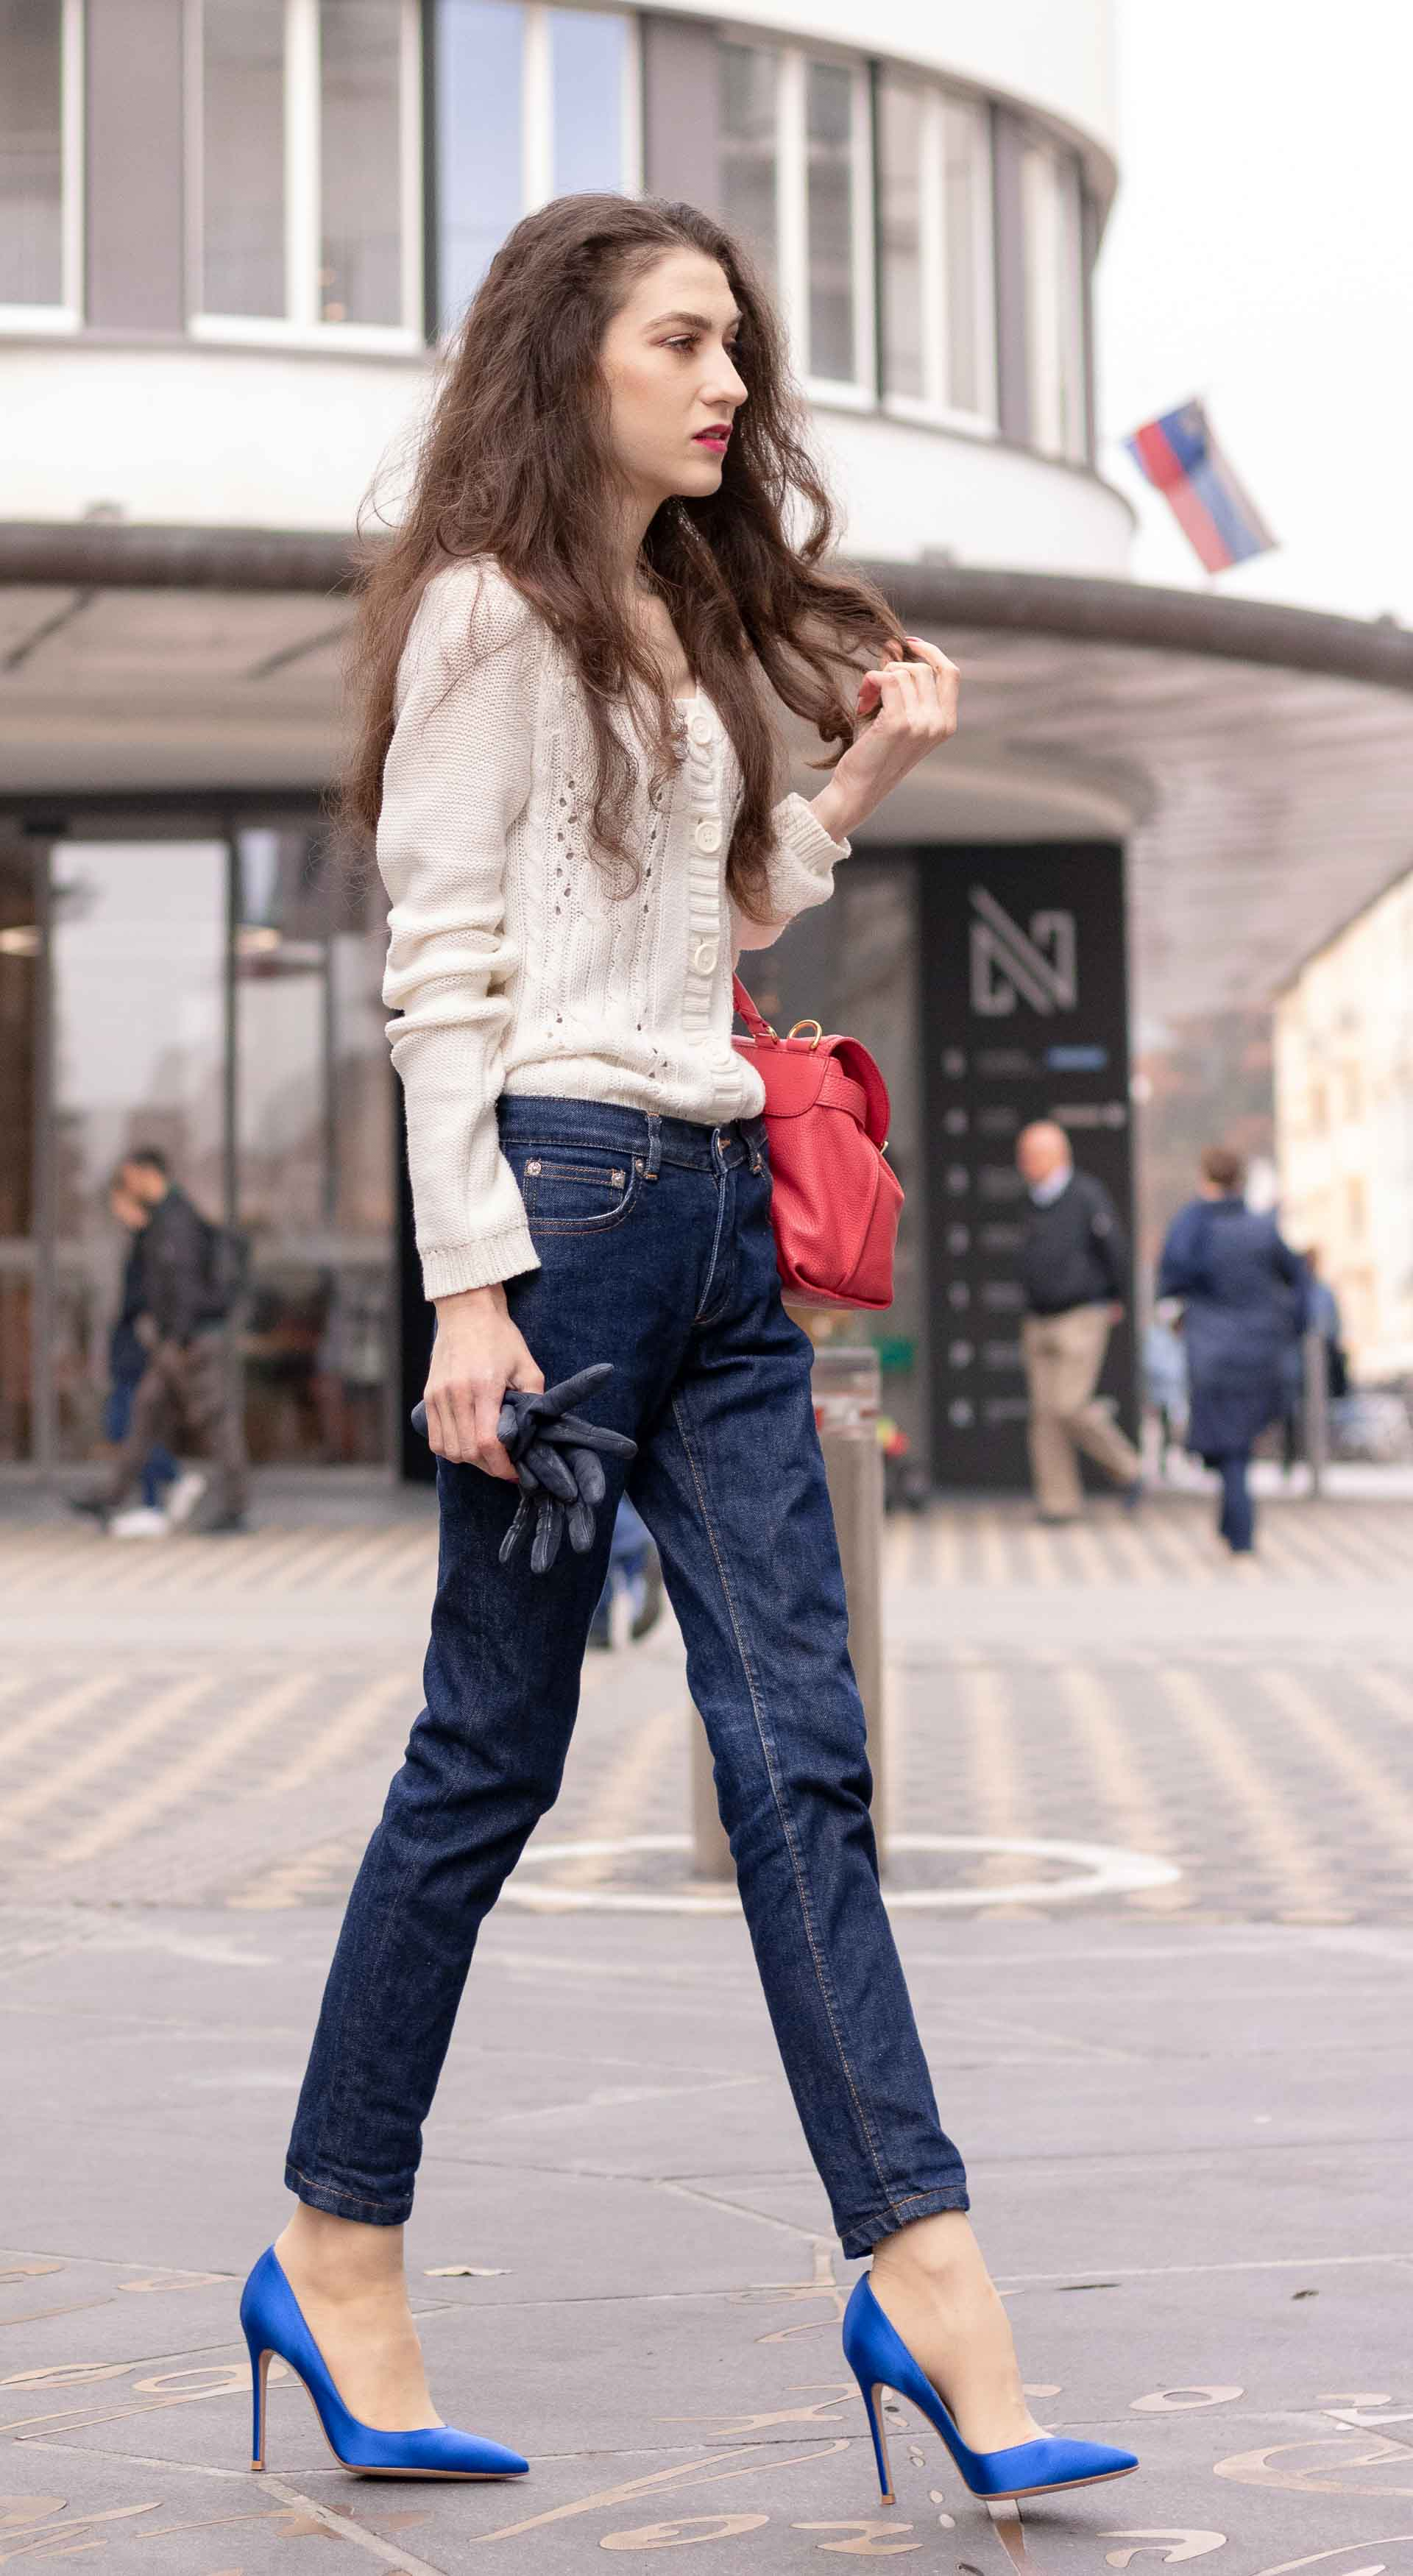 Beautiful Slovenian Fashion Blogger Veronika Lipar of Brunette from Wall dressed in white Mango cardigan tucked into dark blue denim jeans from a.p.c., blue Gianvito Rossi pumps, pink top handle bag on the street in Ljubljana